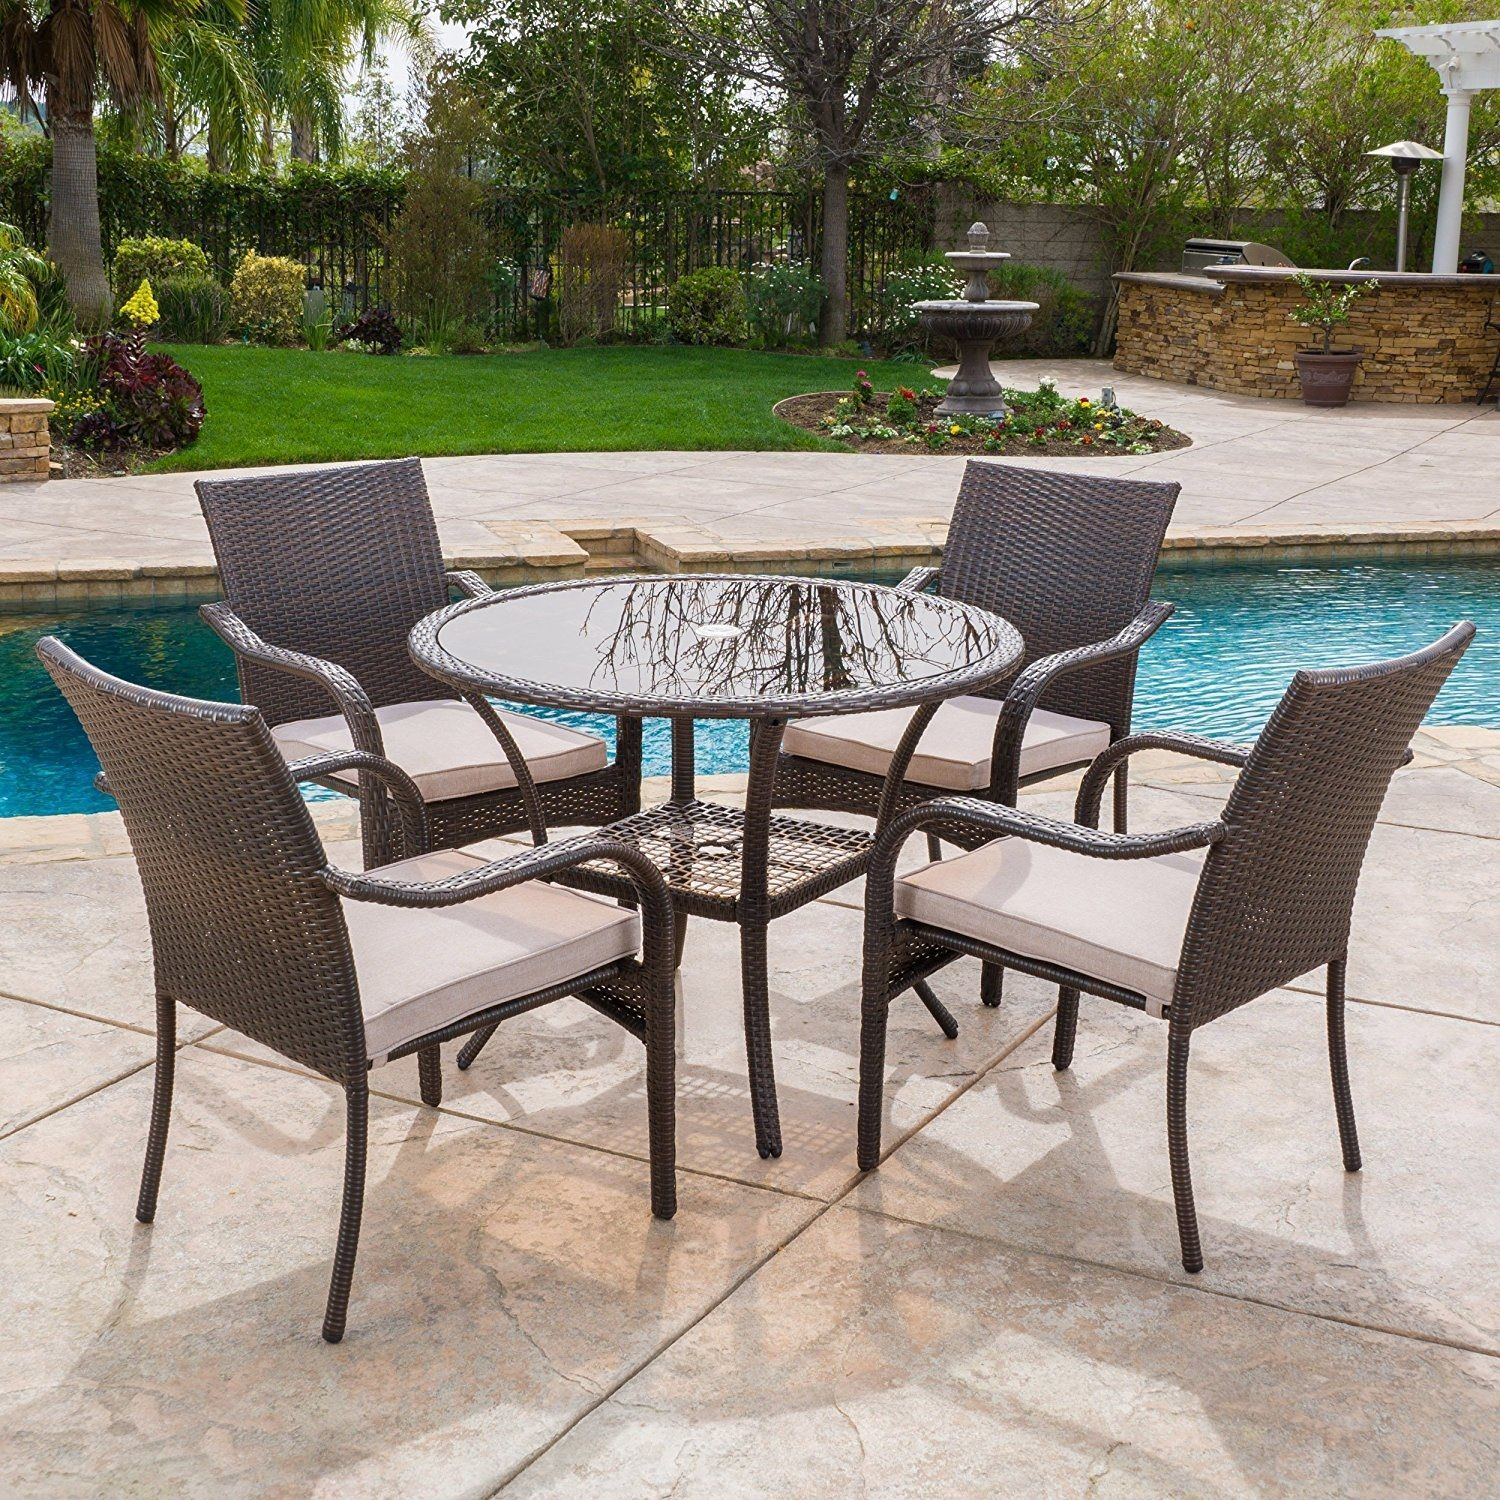 Wicker Patio Dining Sets Outdoor Wicker Patio Furniture Wicker Dining Set Beachfront Decor